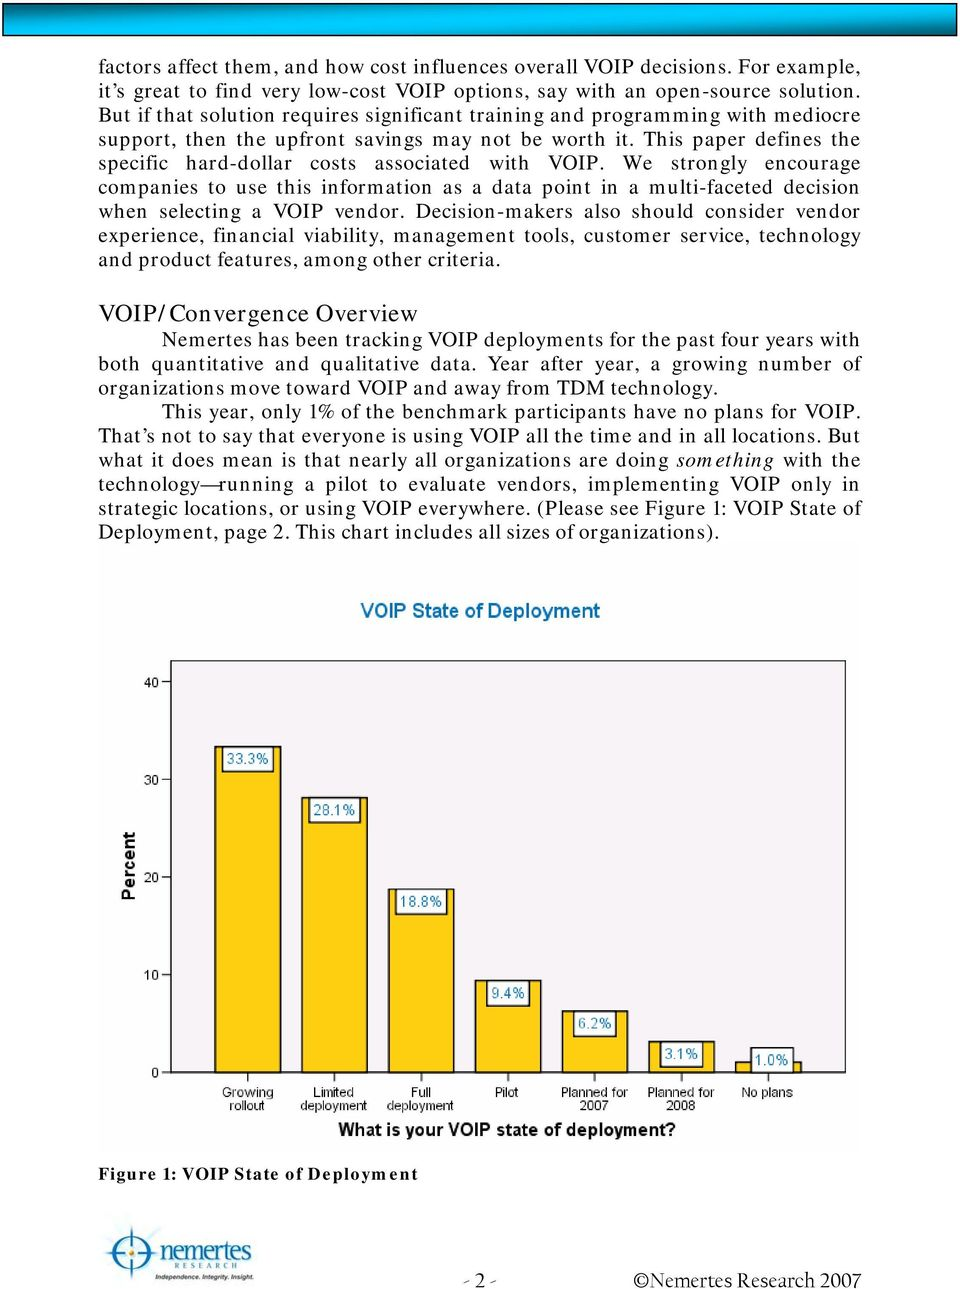 This paper defines the specific hard-dollar costs associated with VOIP.